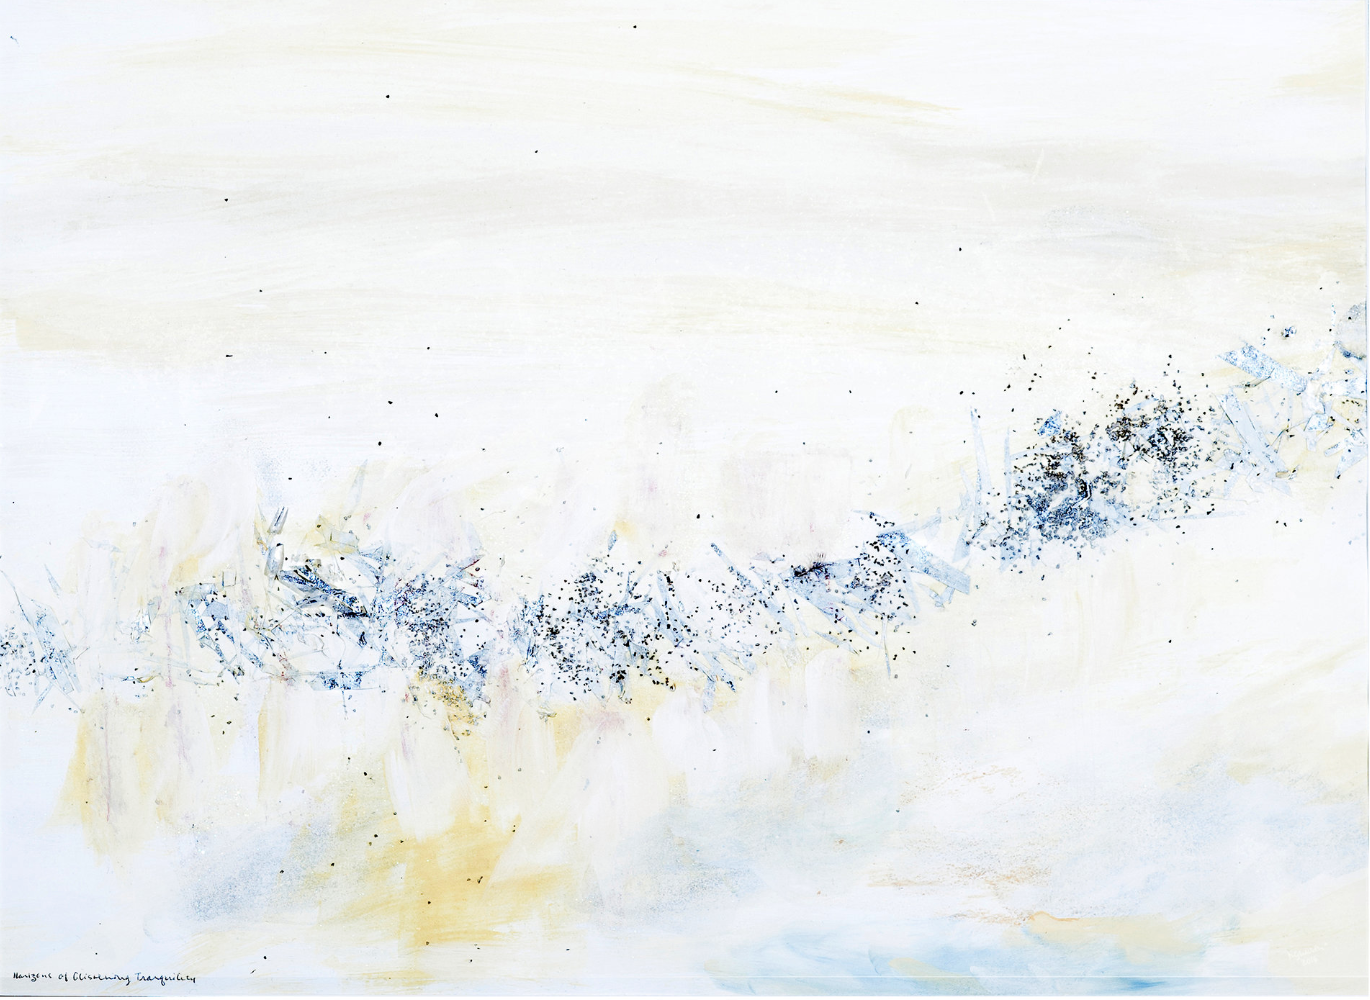 Painting by Madeleine Schachter. HORIZONS OF GLISTENING TRANQUILITY (Printed on glass) Commissioned in private collection. Materials pastels, metal leaf, crystals, watercolors, and crushed glass.